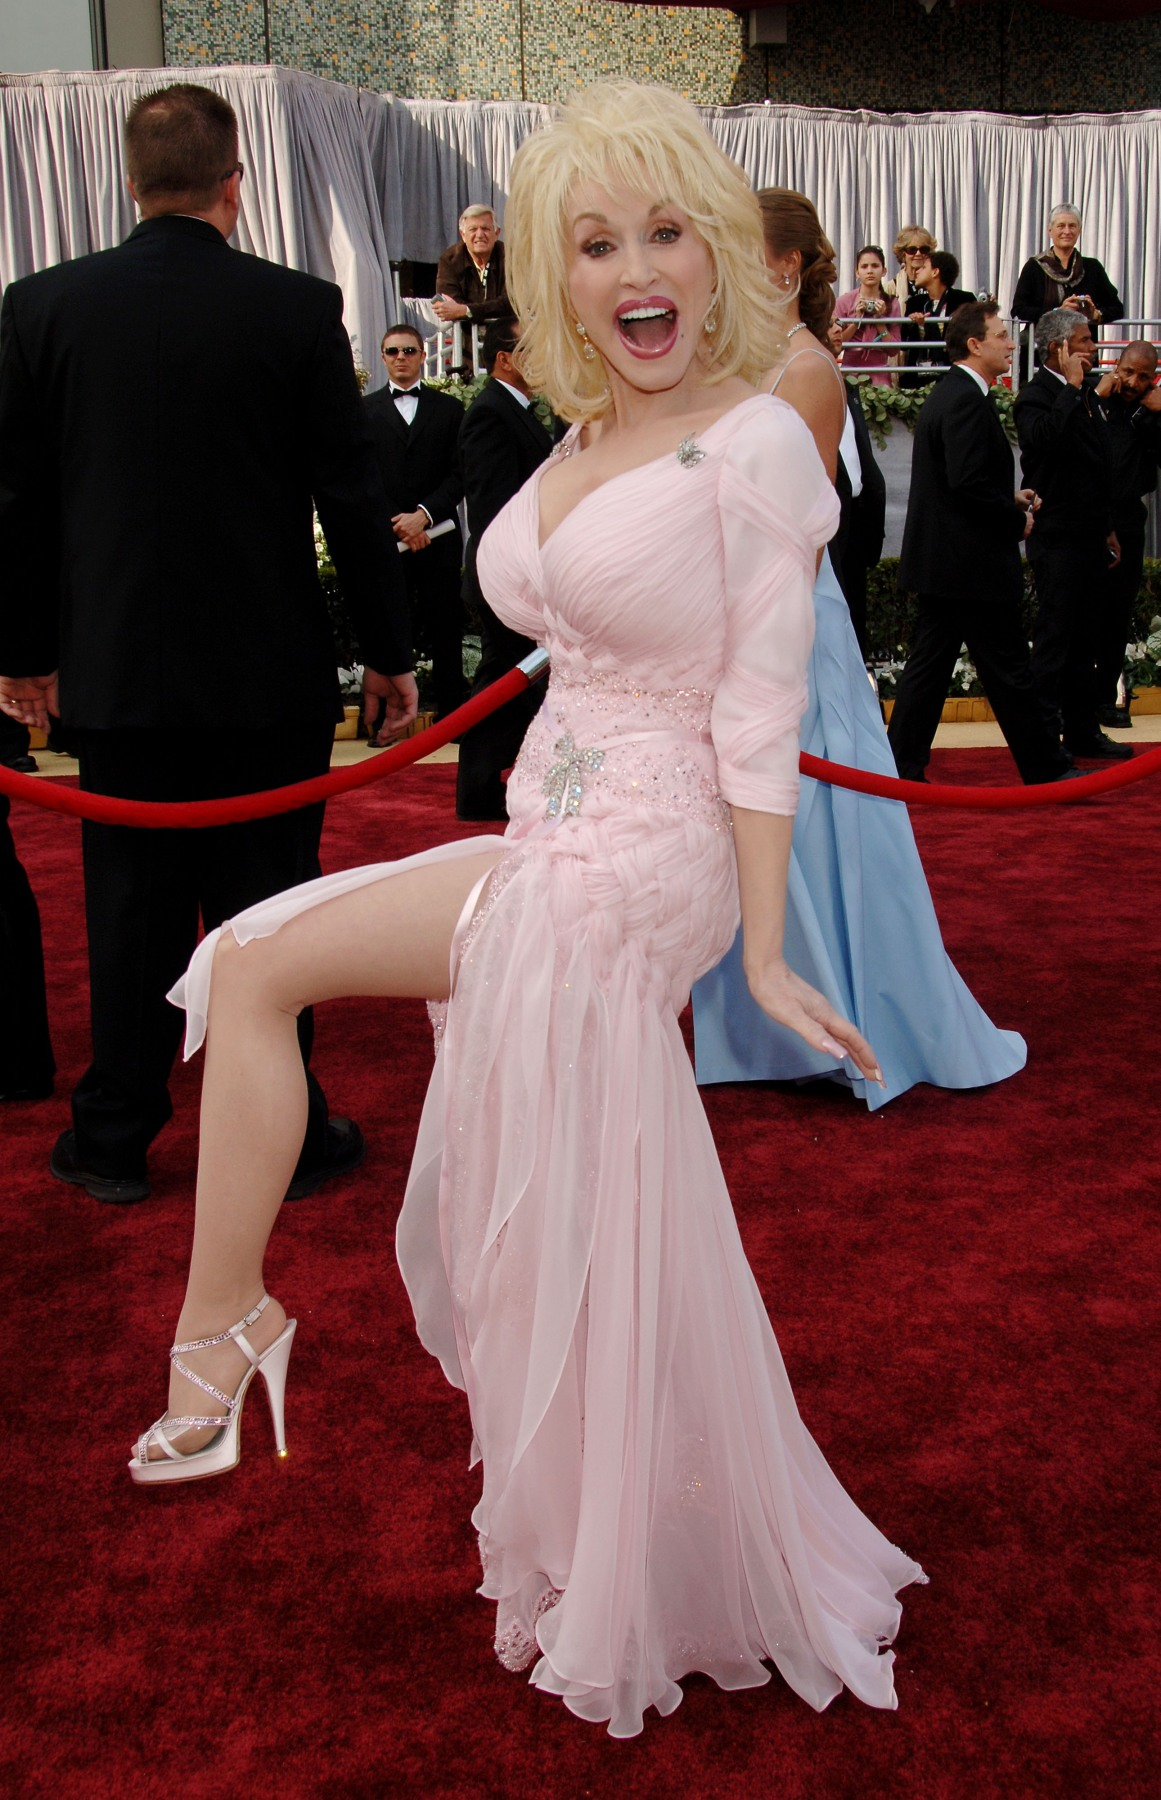 http://pictures.platinum-celebs.com/dolly-parton-nude-photo.jpg